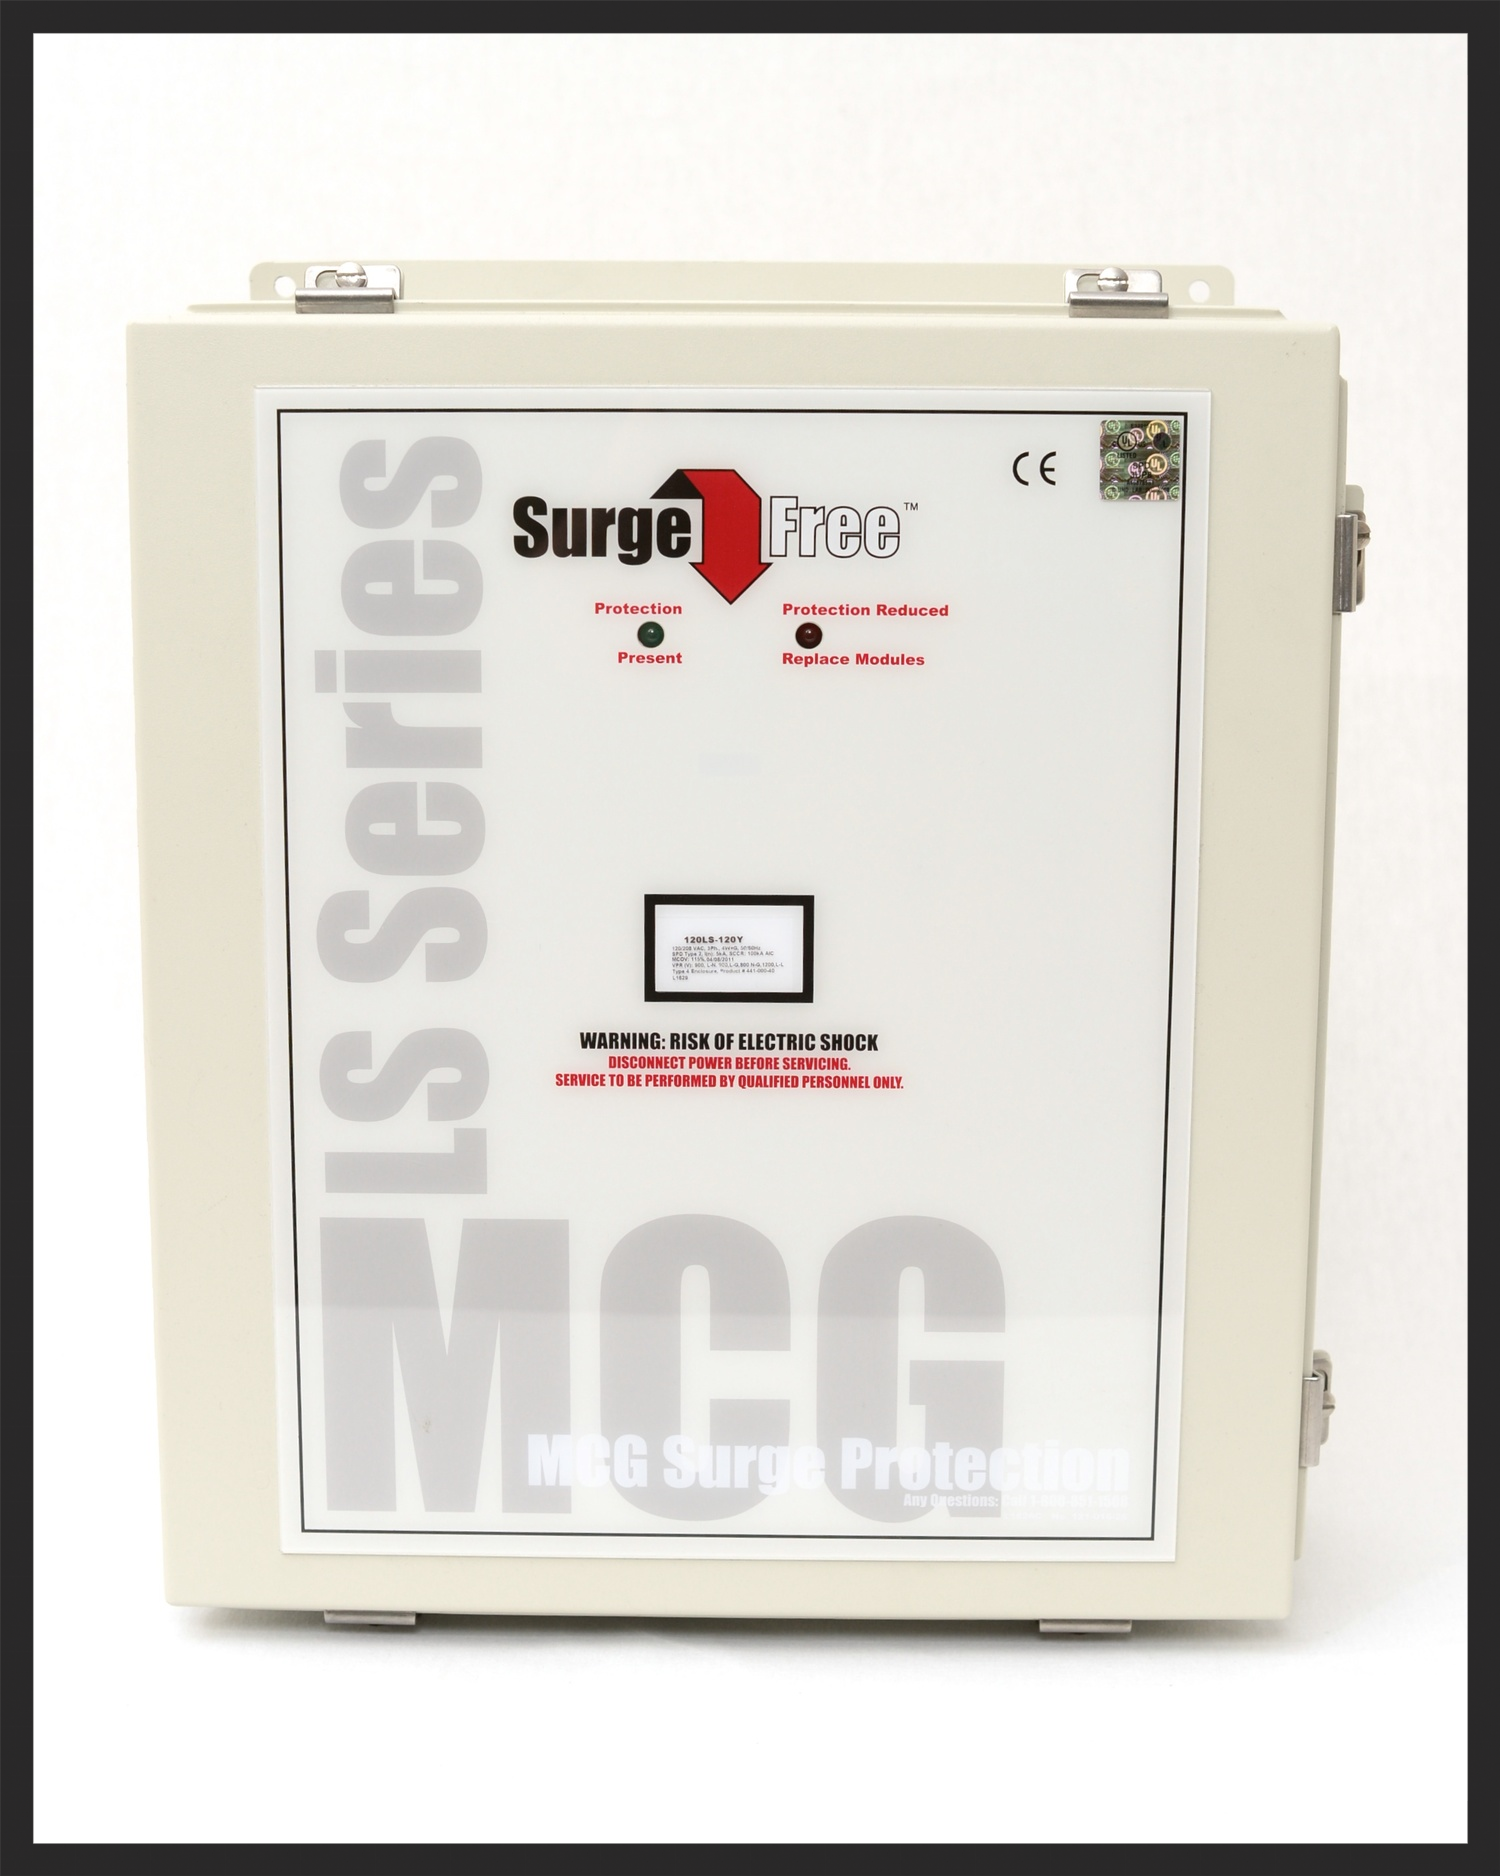 Options Available: Internal Disconnect • Upgradeable Diagnostics: Surge Event Counter, Beeper, & Status Relay (1 Form C Contacts) • NEMA 4X Enclosure • Low Impedance Micro-Z cable (Click here)